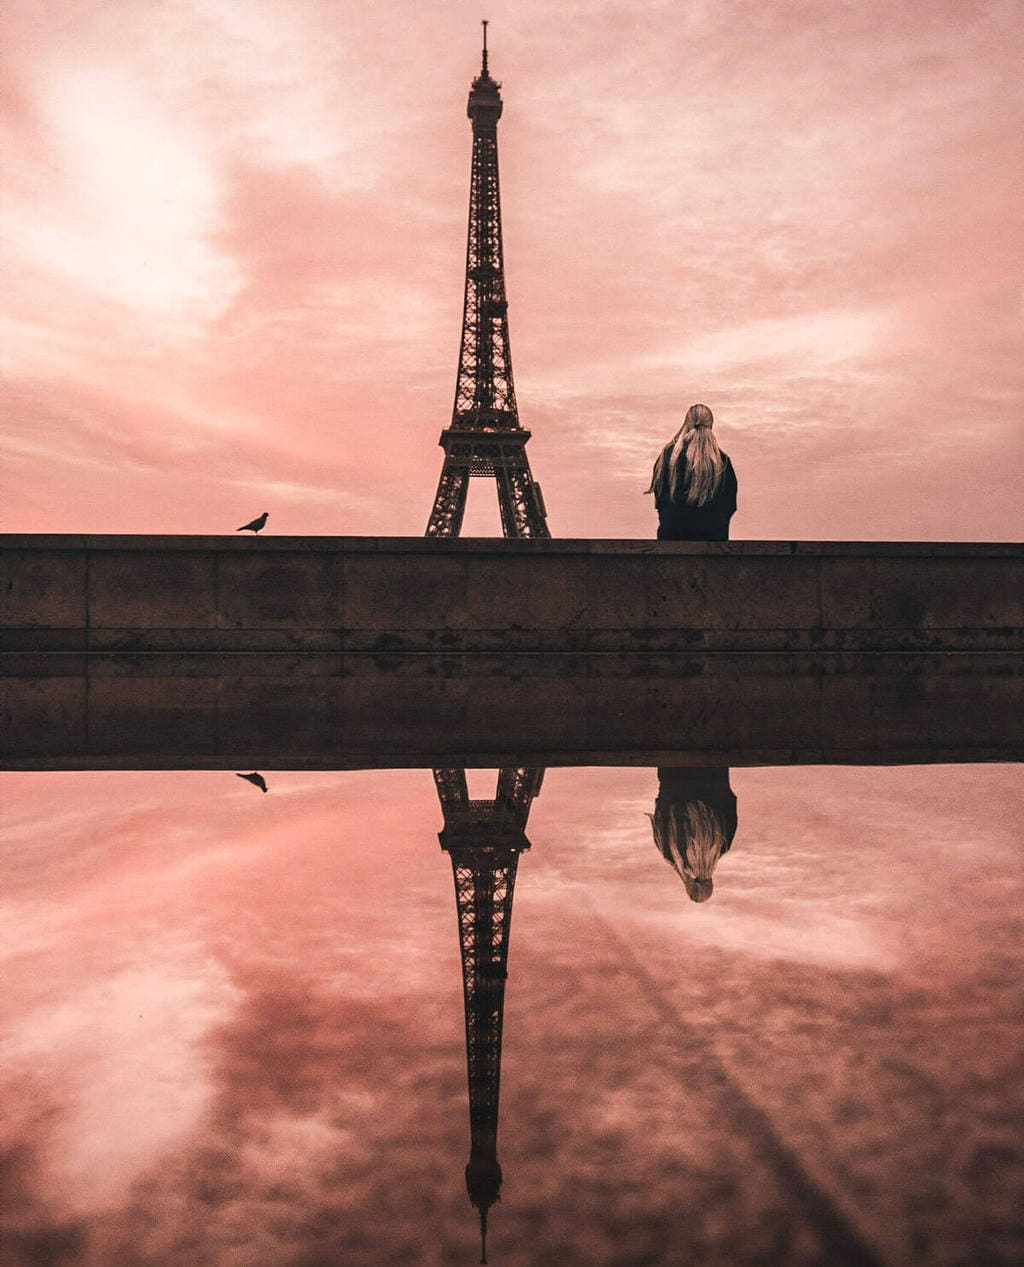 Trocadero view of Eiffel Tower at sunrise with a reflection in a puddle. Get all the best Eiffel Tower views and a guide to New Year's in Paris here.